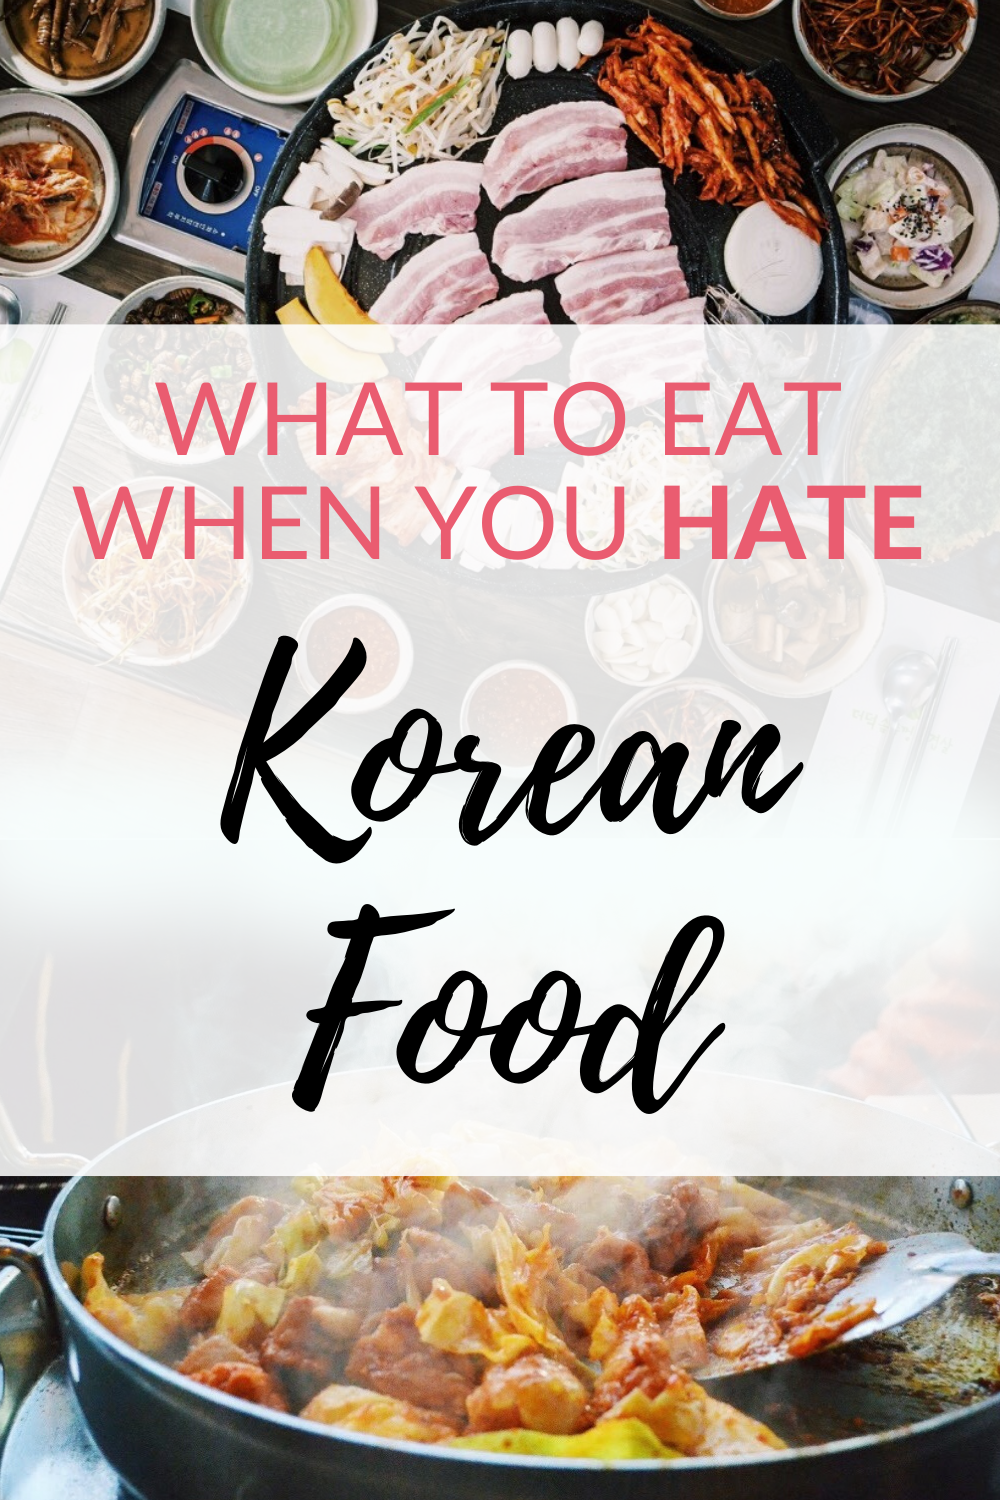 What to eat when you hate Korean food